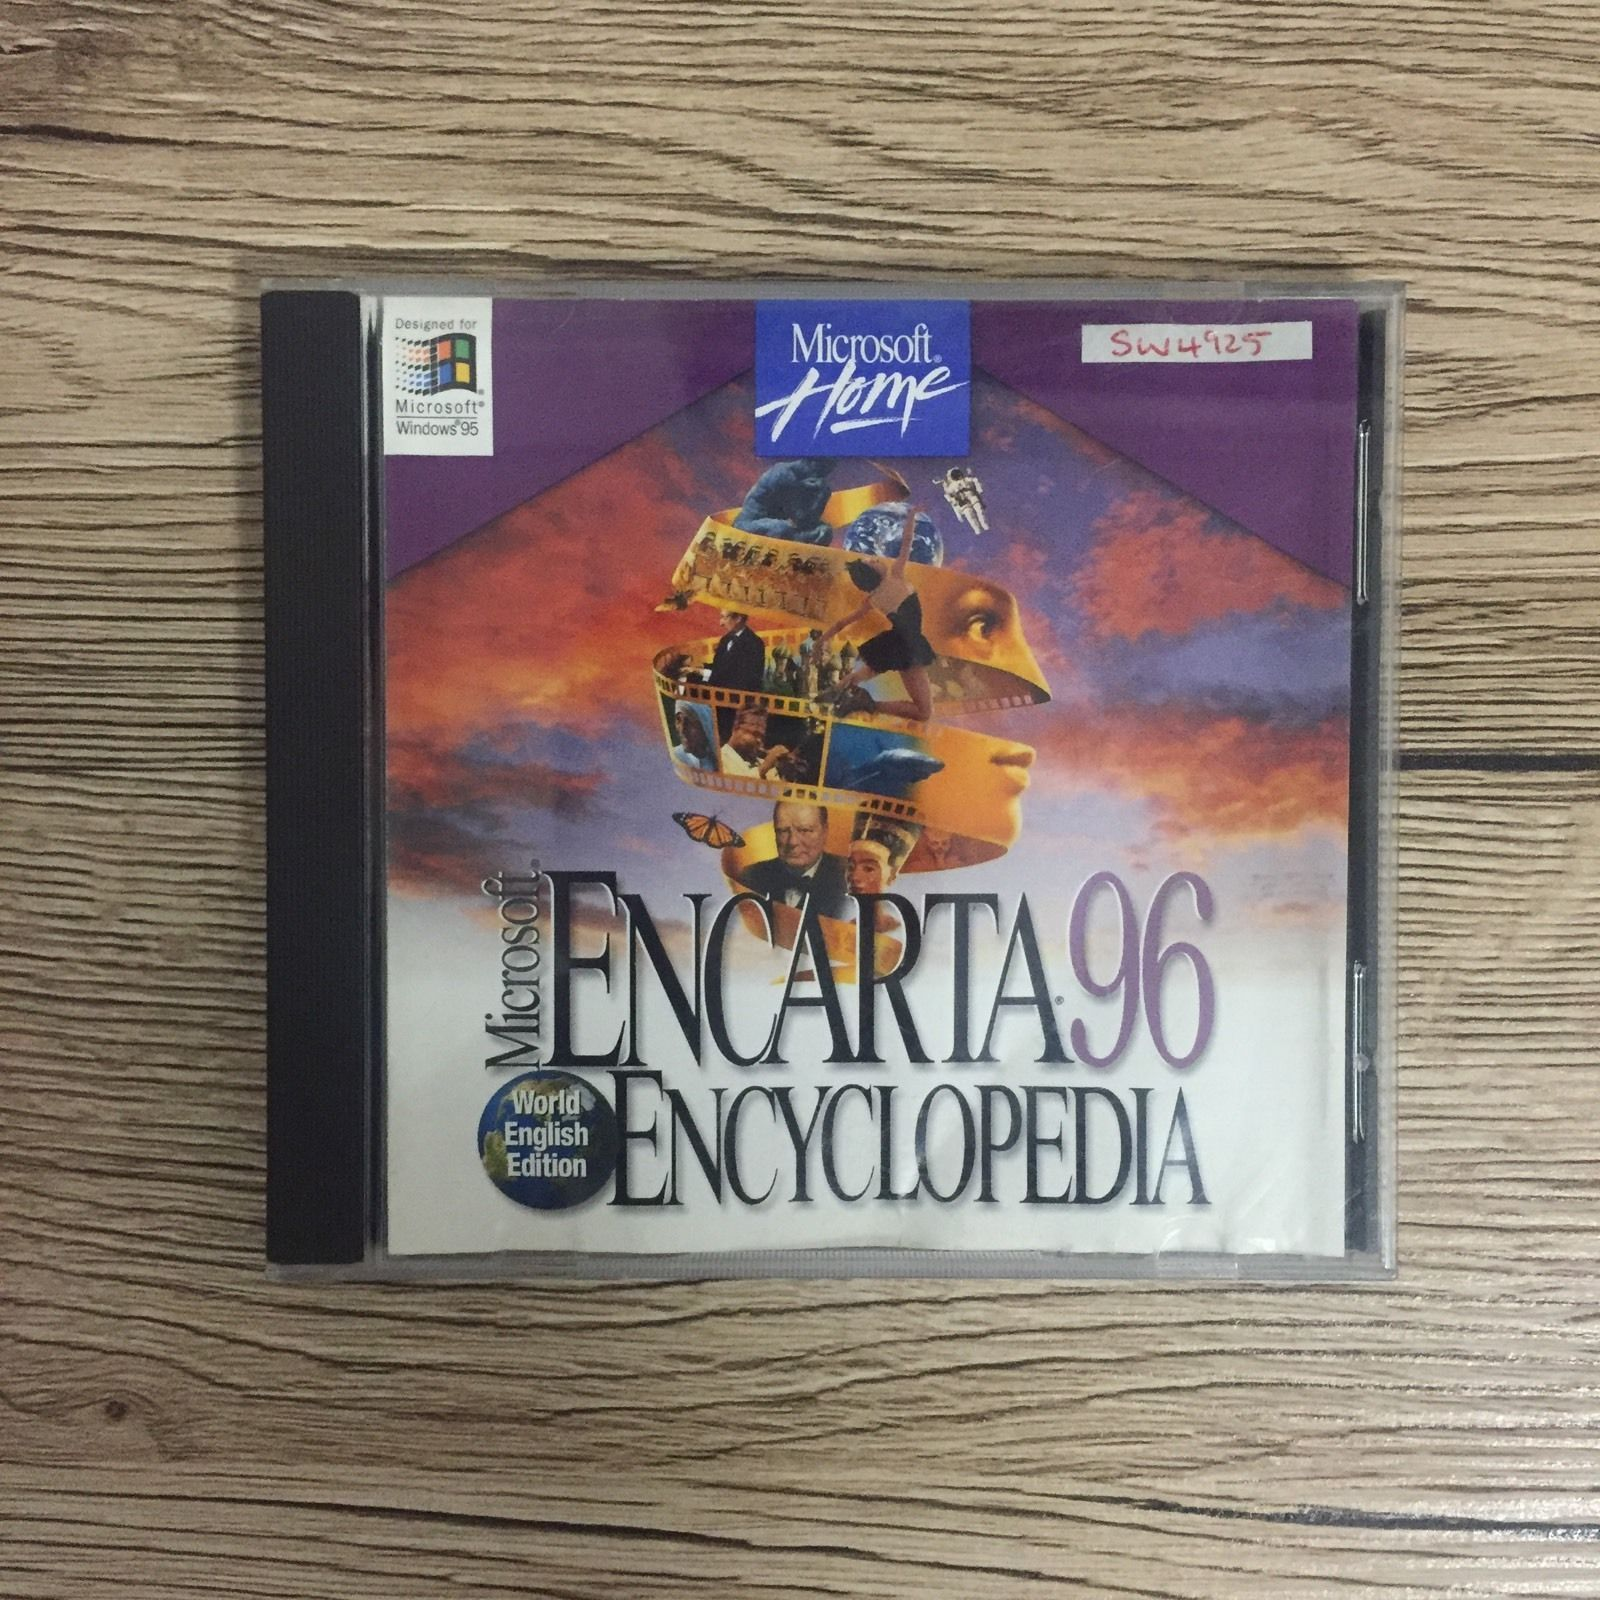 Microsoft Encarta Encyclopedia 96 Windows 95 PC CD ROM ...